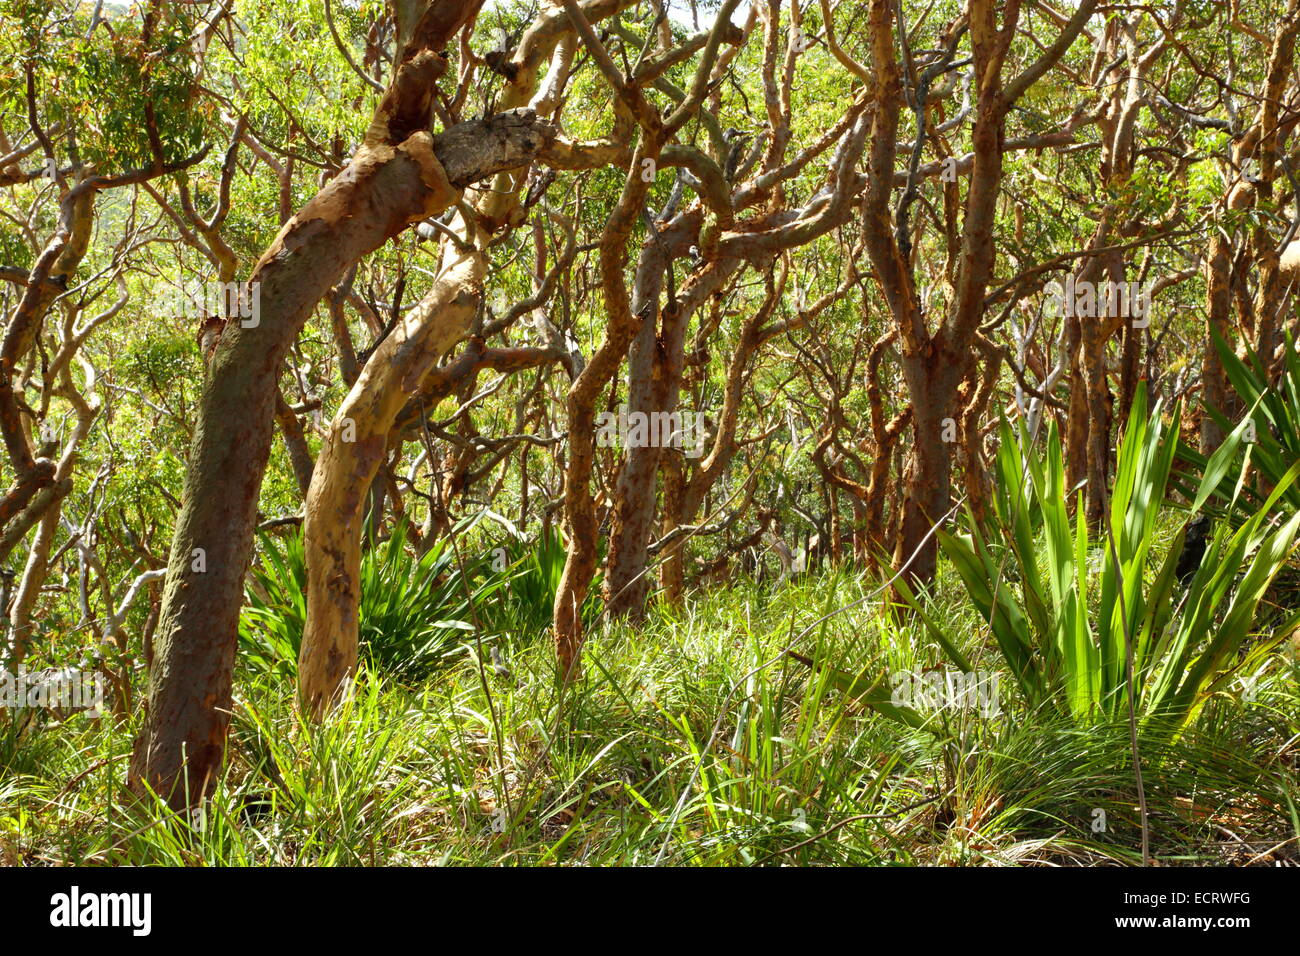 Eucalyptus forest in Royal National Park, Lilyvale, NSW, Australia. - Stock Image